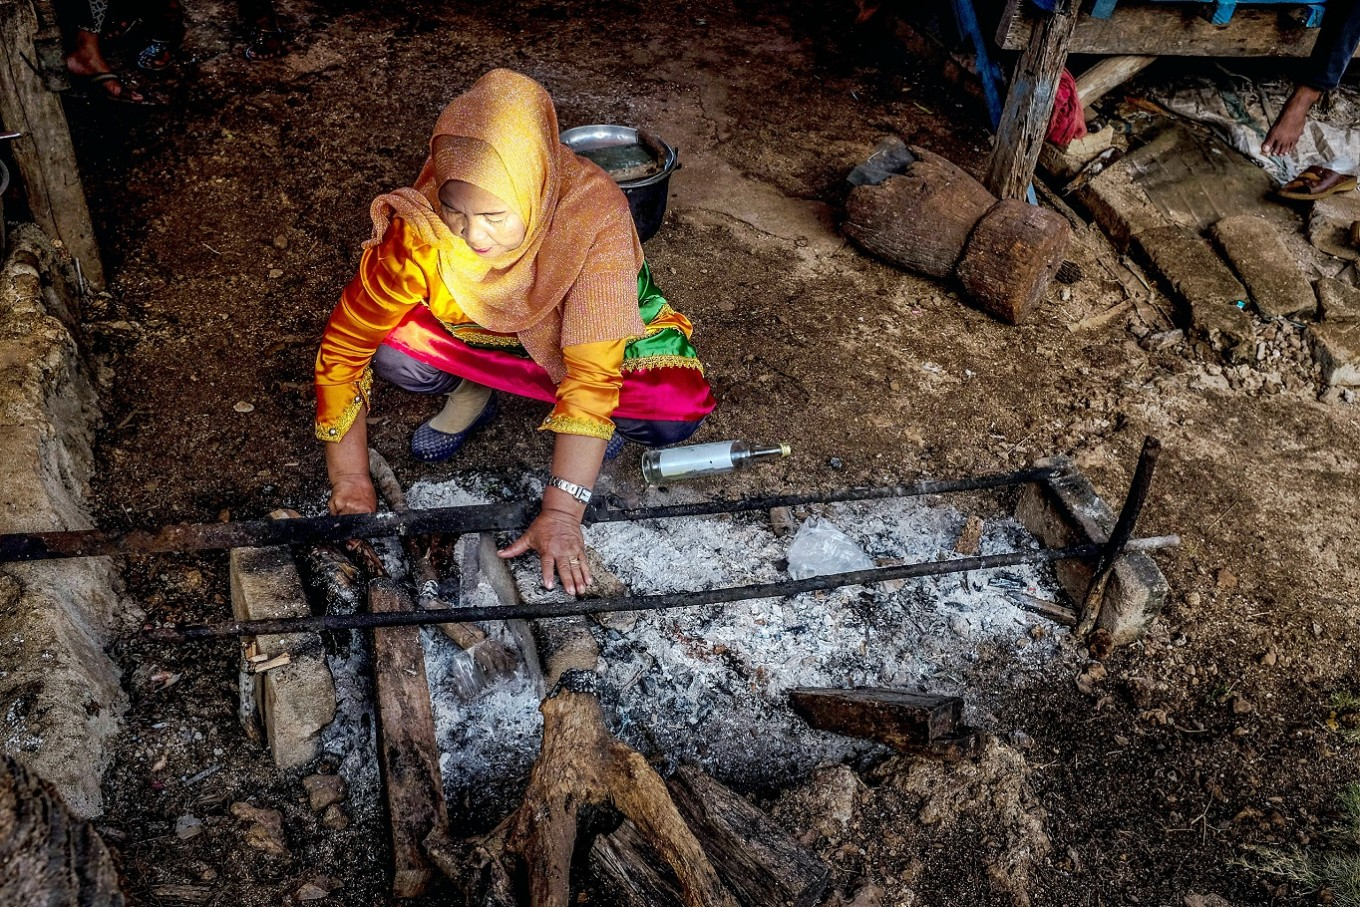 Under the spotlight: A resident of Wakatobi, Southeast Sulawesi, prepares a traditional dish for the Karia'a ritual.